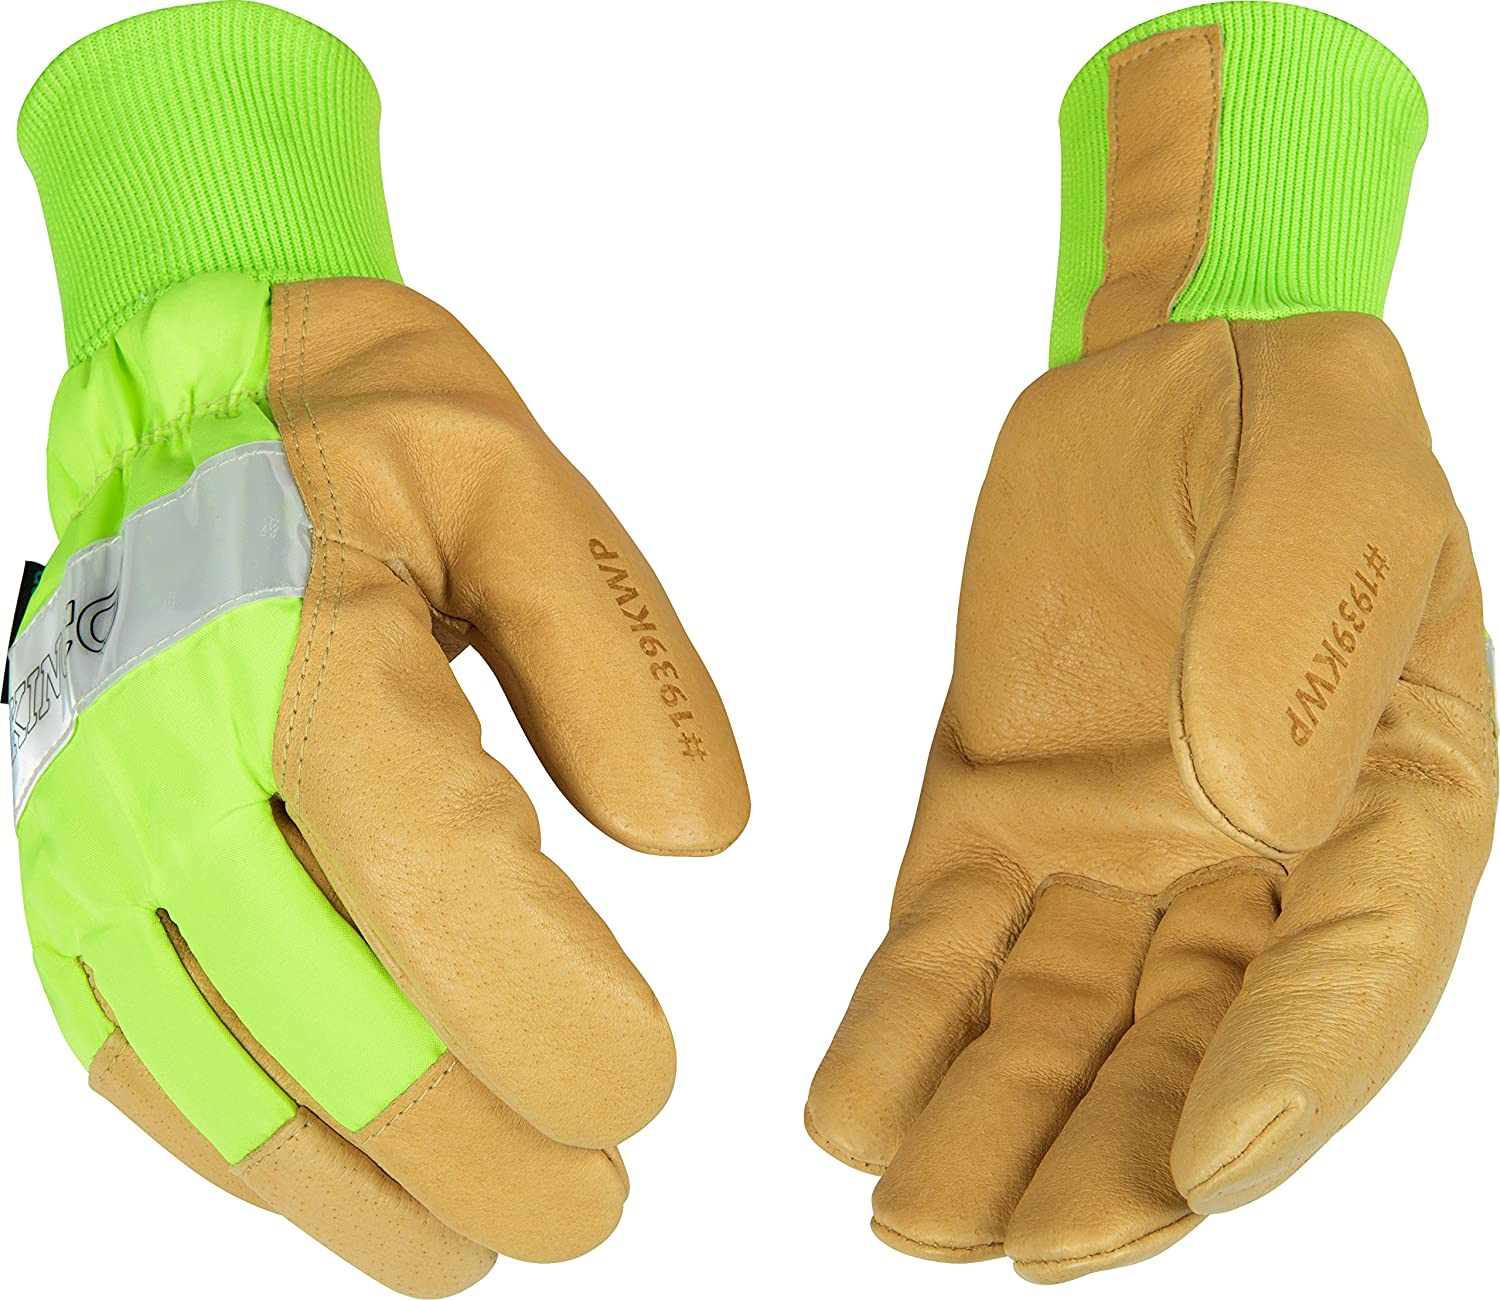 Kinco 1939KWP Heatkeep Lined Grain Pigskin Leather High Visibility Waterproof Glove with Green Back, Knit Wrist, Work, Medium, Palomino (Pack of 6 Pairs) by KINCO INTERNATIONAL B00AN7TZ0G